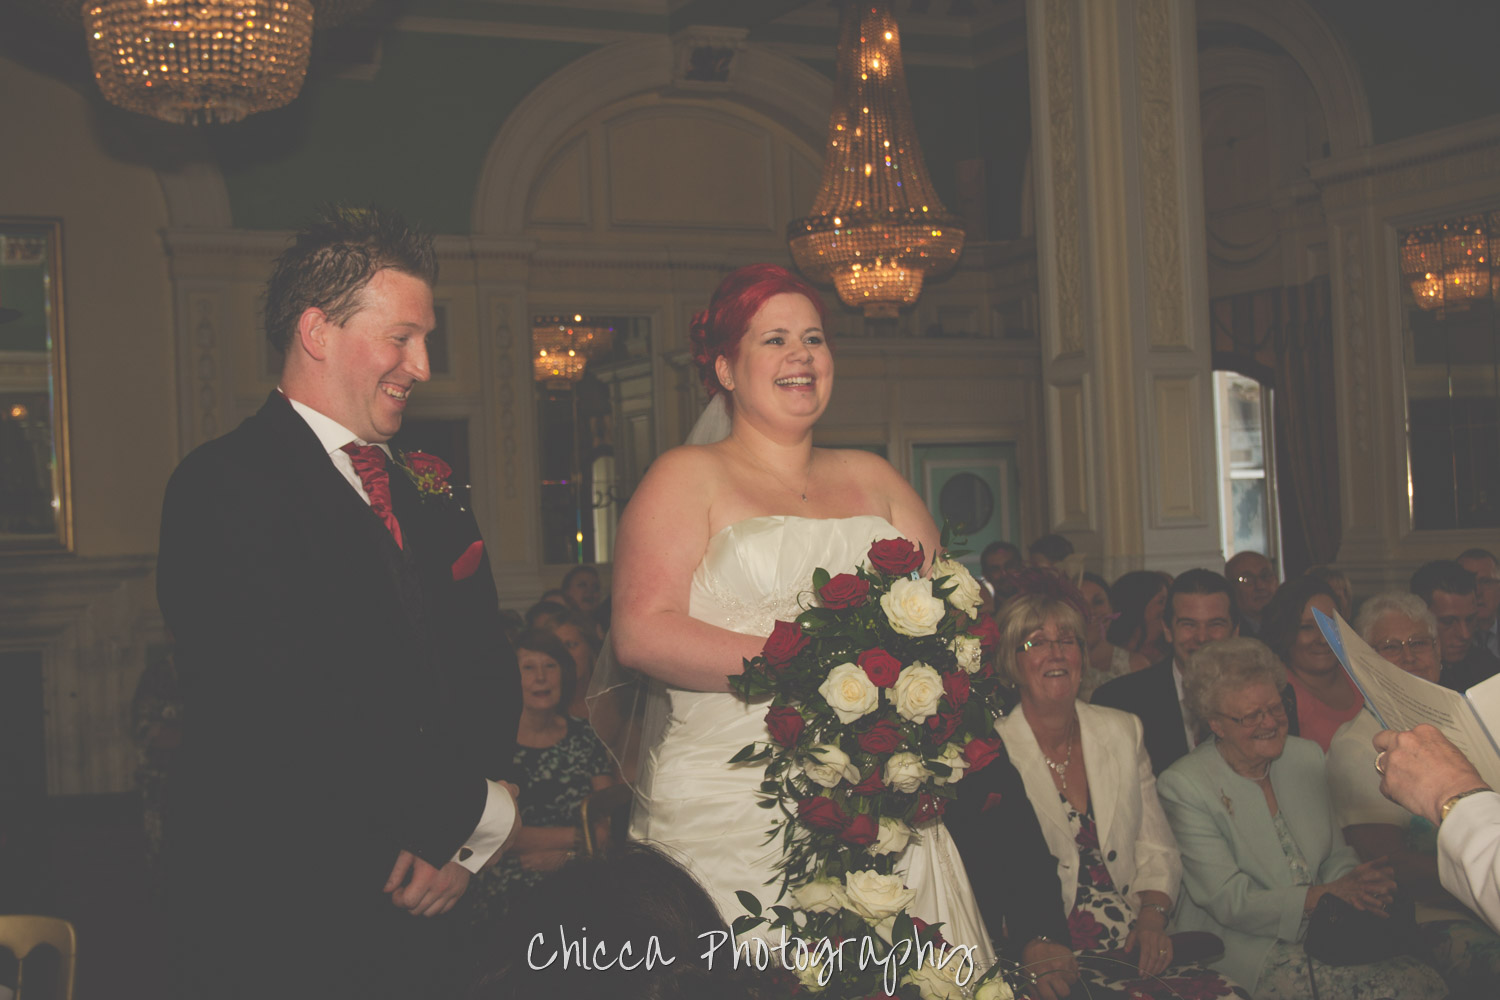 midland-hotel-bradford-wedding-photography-chicca-6.jpg